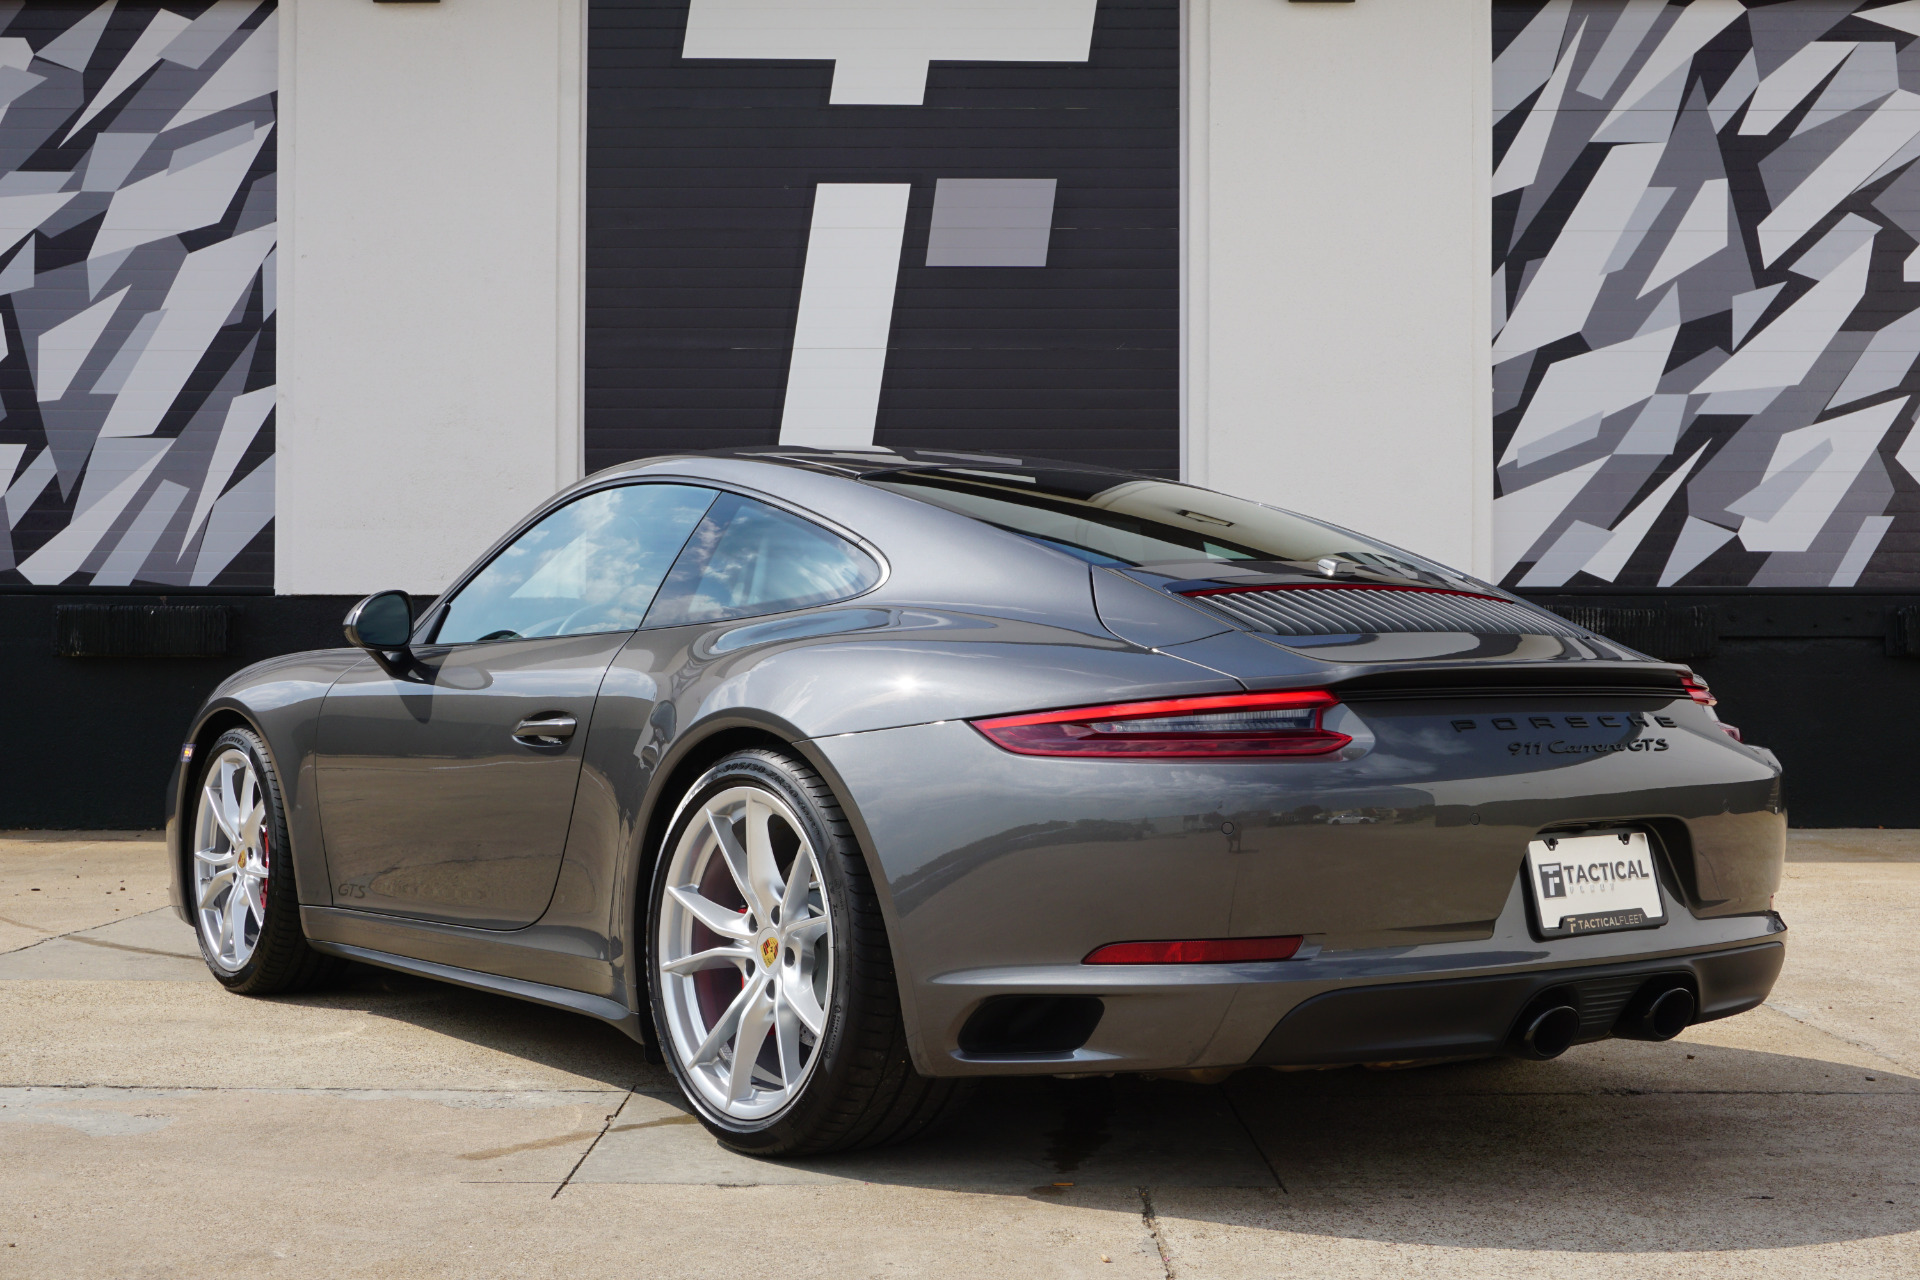 911 Carrera Gts >> Used 2019 Porsche 911 Carrera Gts For Sale 131 900